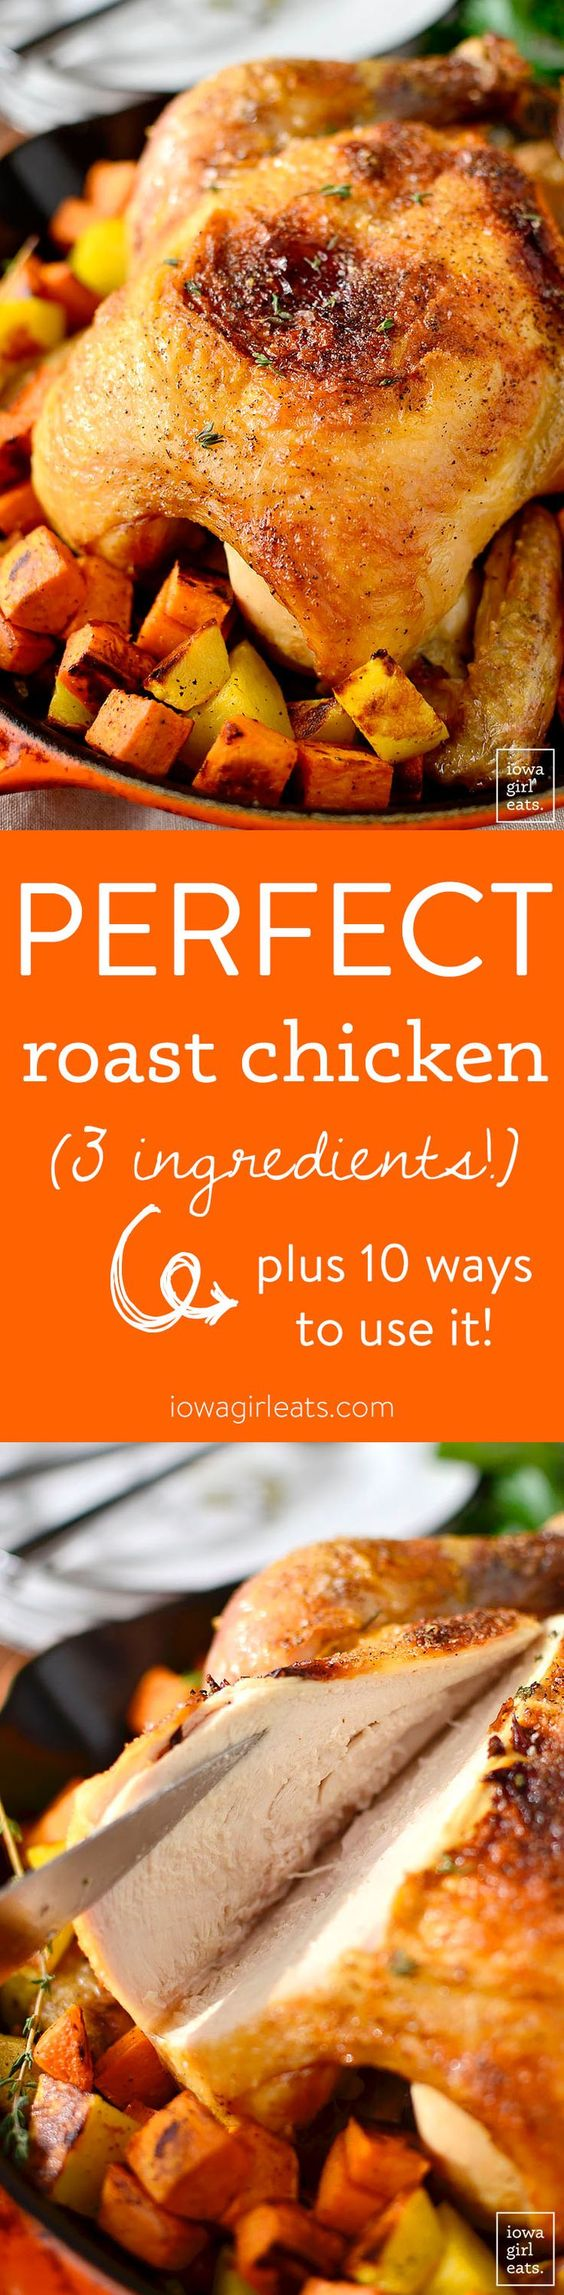 Easy Roast Chicken calls for just 3 ingredients - chicken, salt, and pepper - yet is the most tender and juicy roast chicken you'll ever eat.   iowagirleats.com